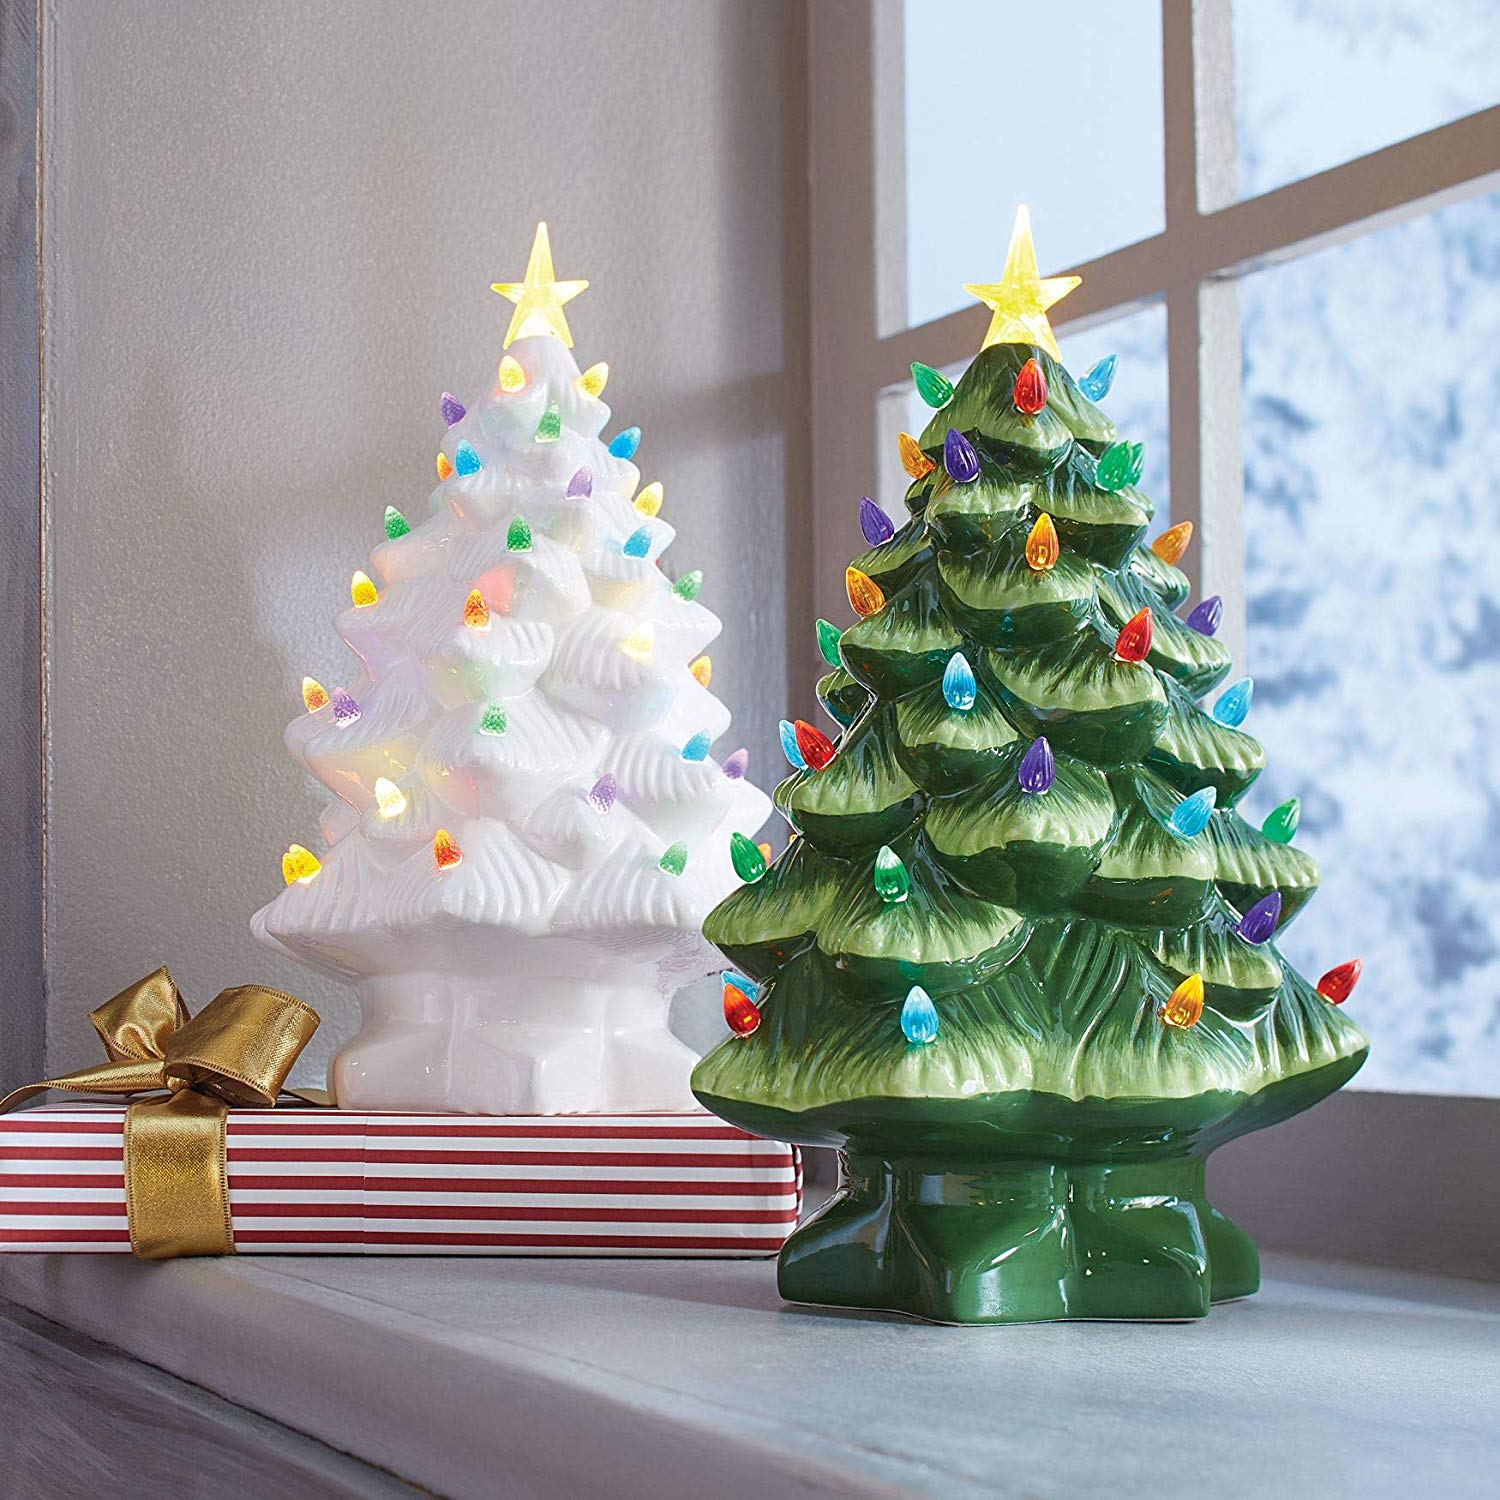 These Ceramic Christmas Trees Are Making A Comeback Jesus Daily